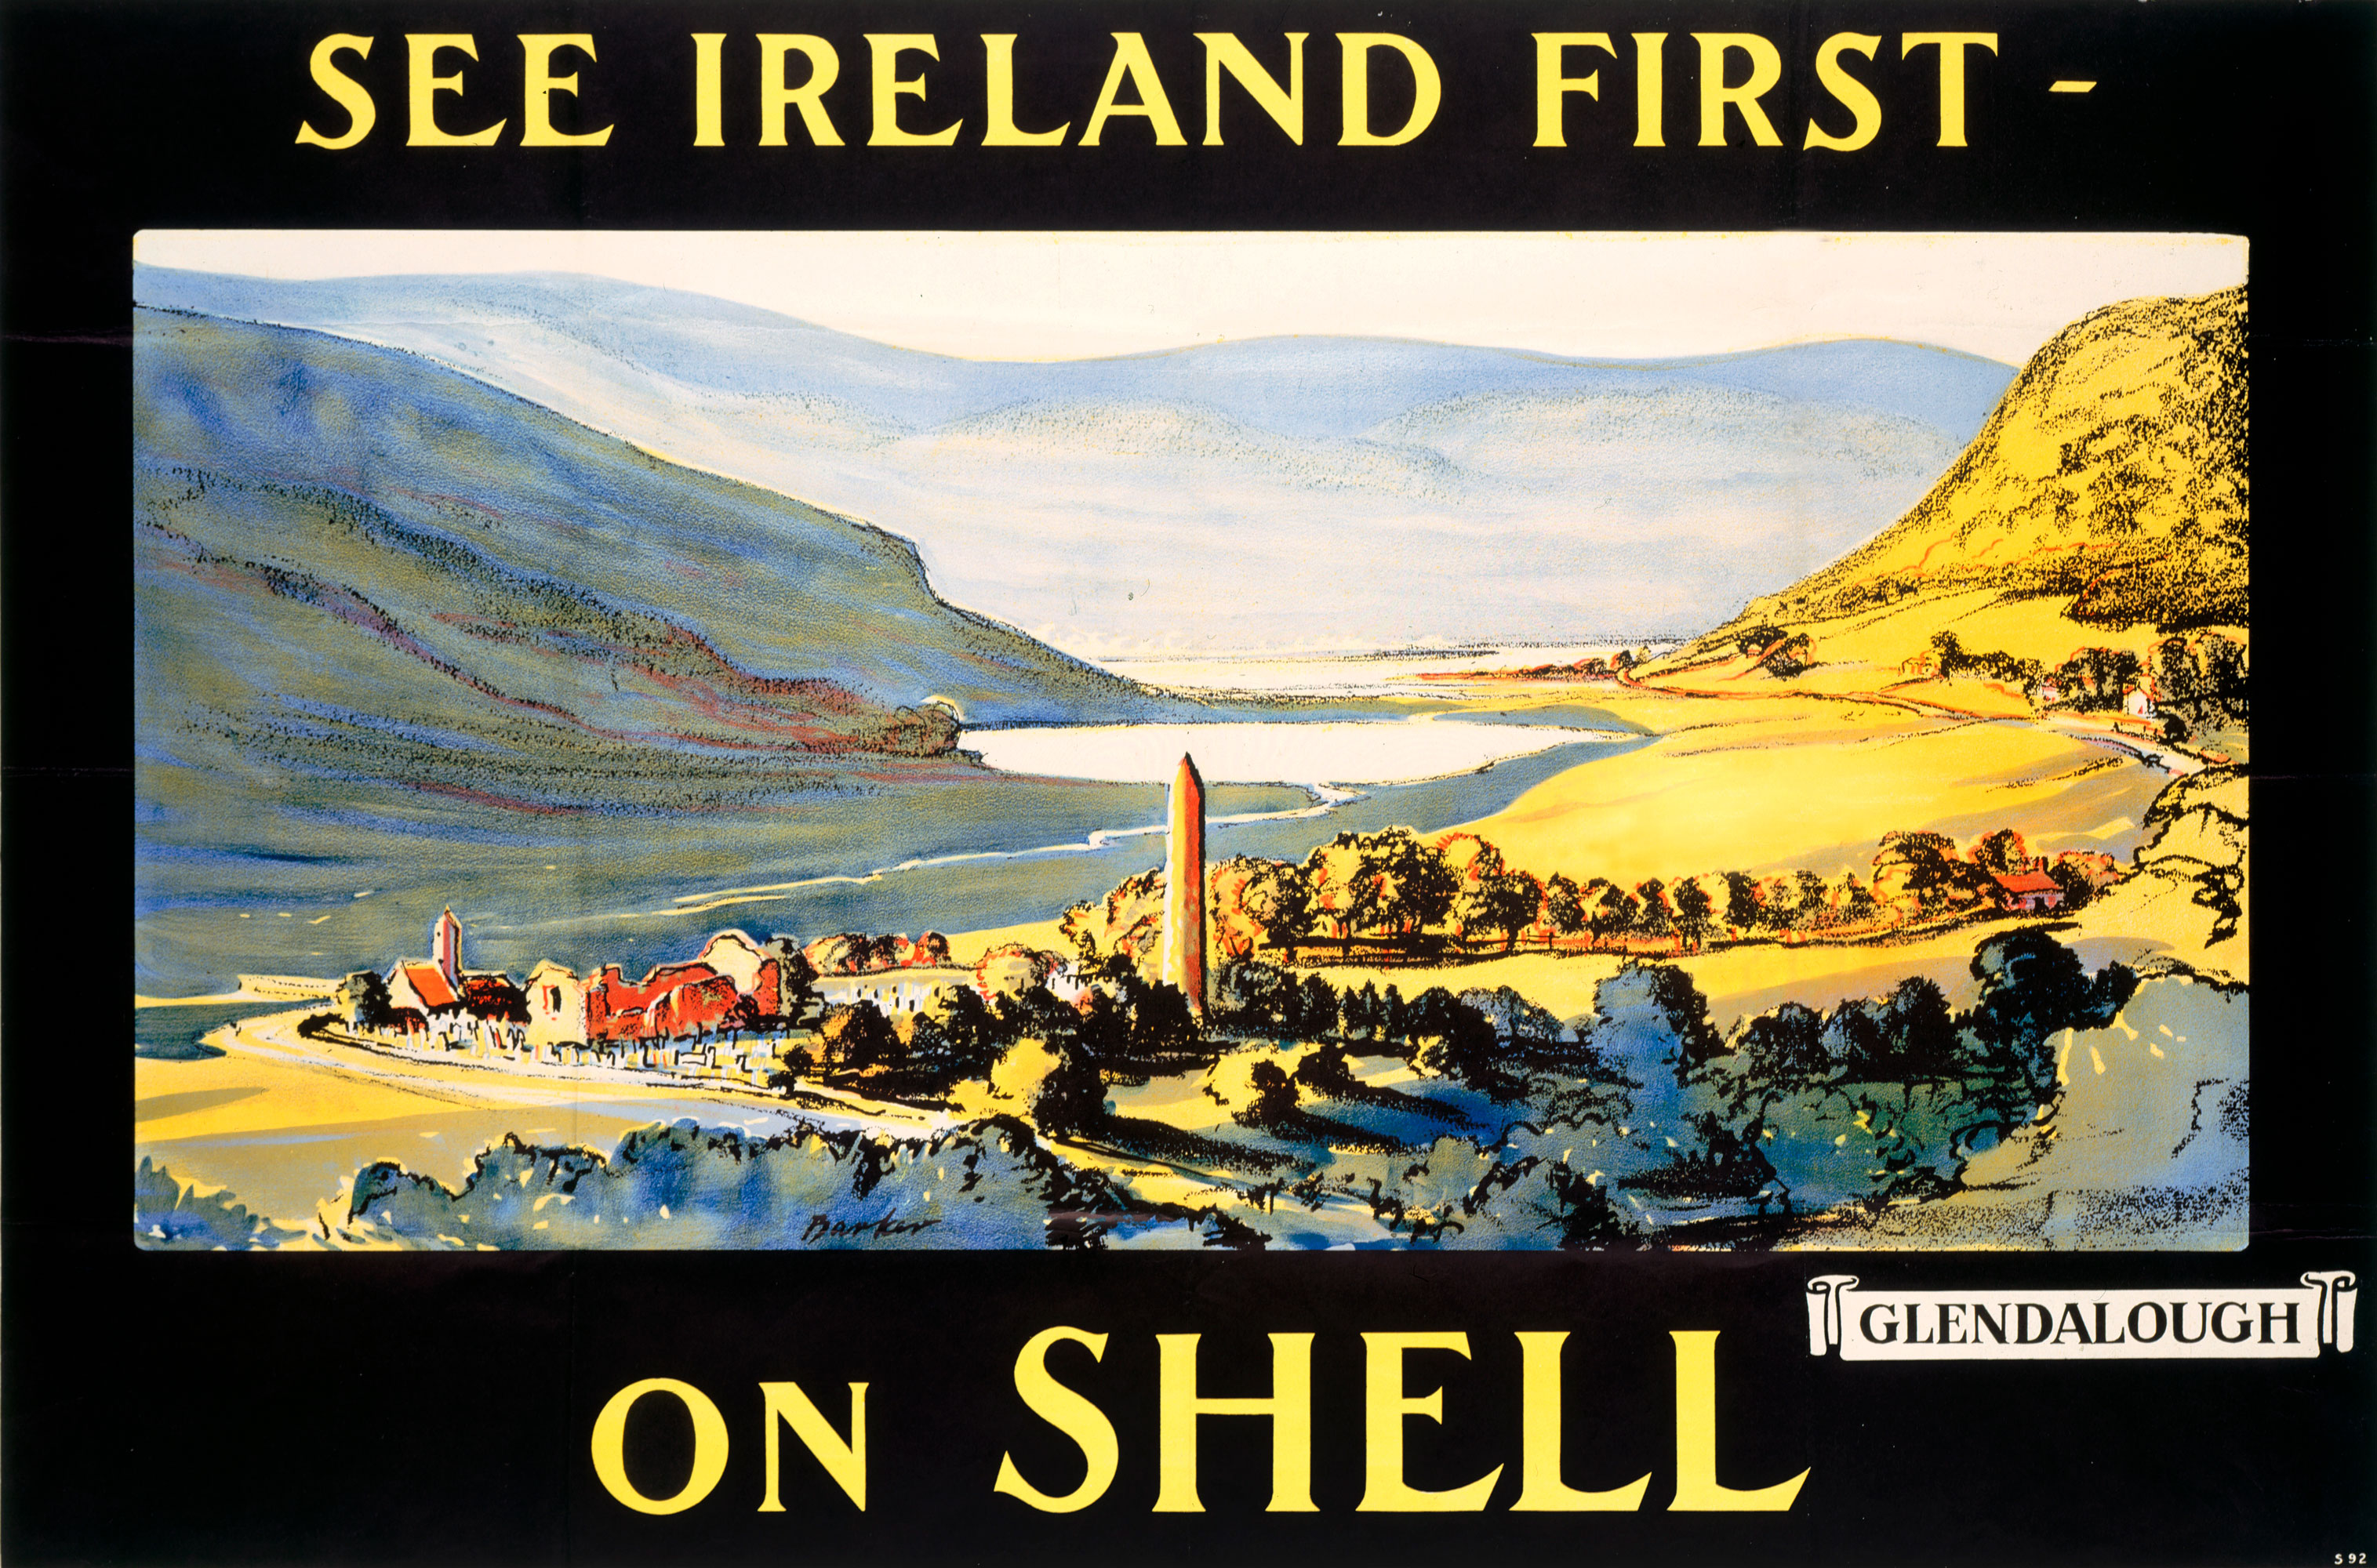 Shell poster number 92, See Ireland First on Shell - Glendalough by J.R. Barker (1925). Painting of the waterside at Glendalough.